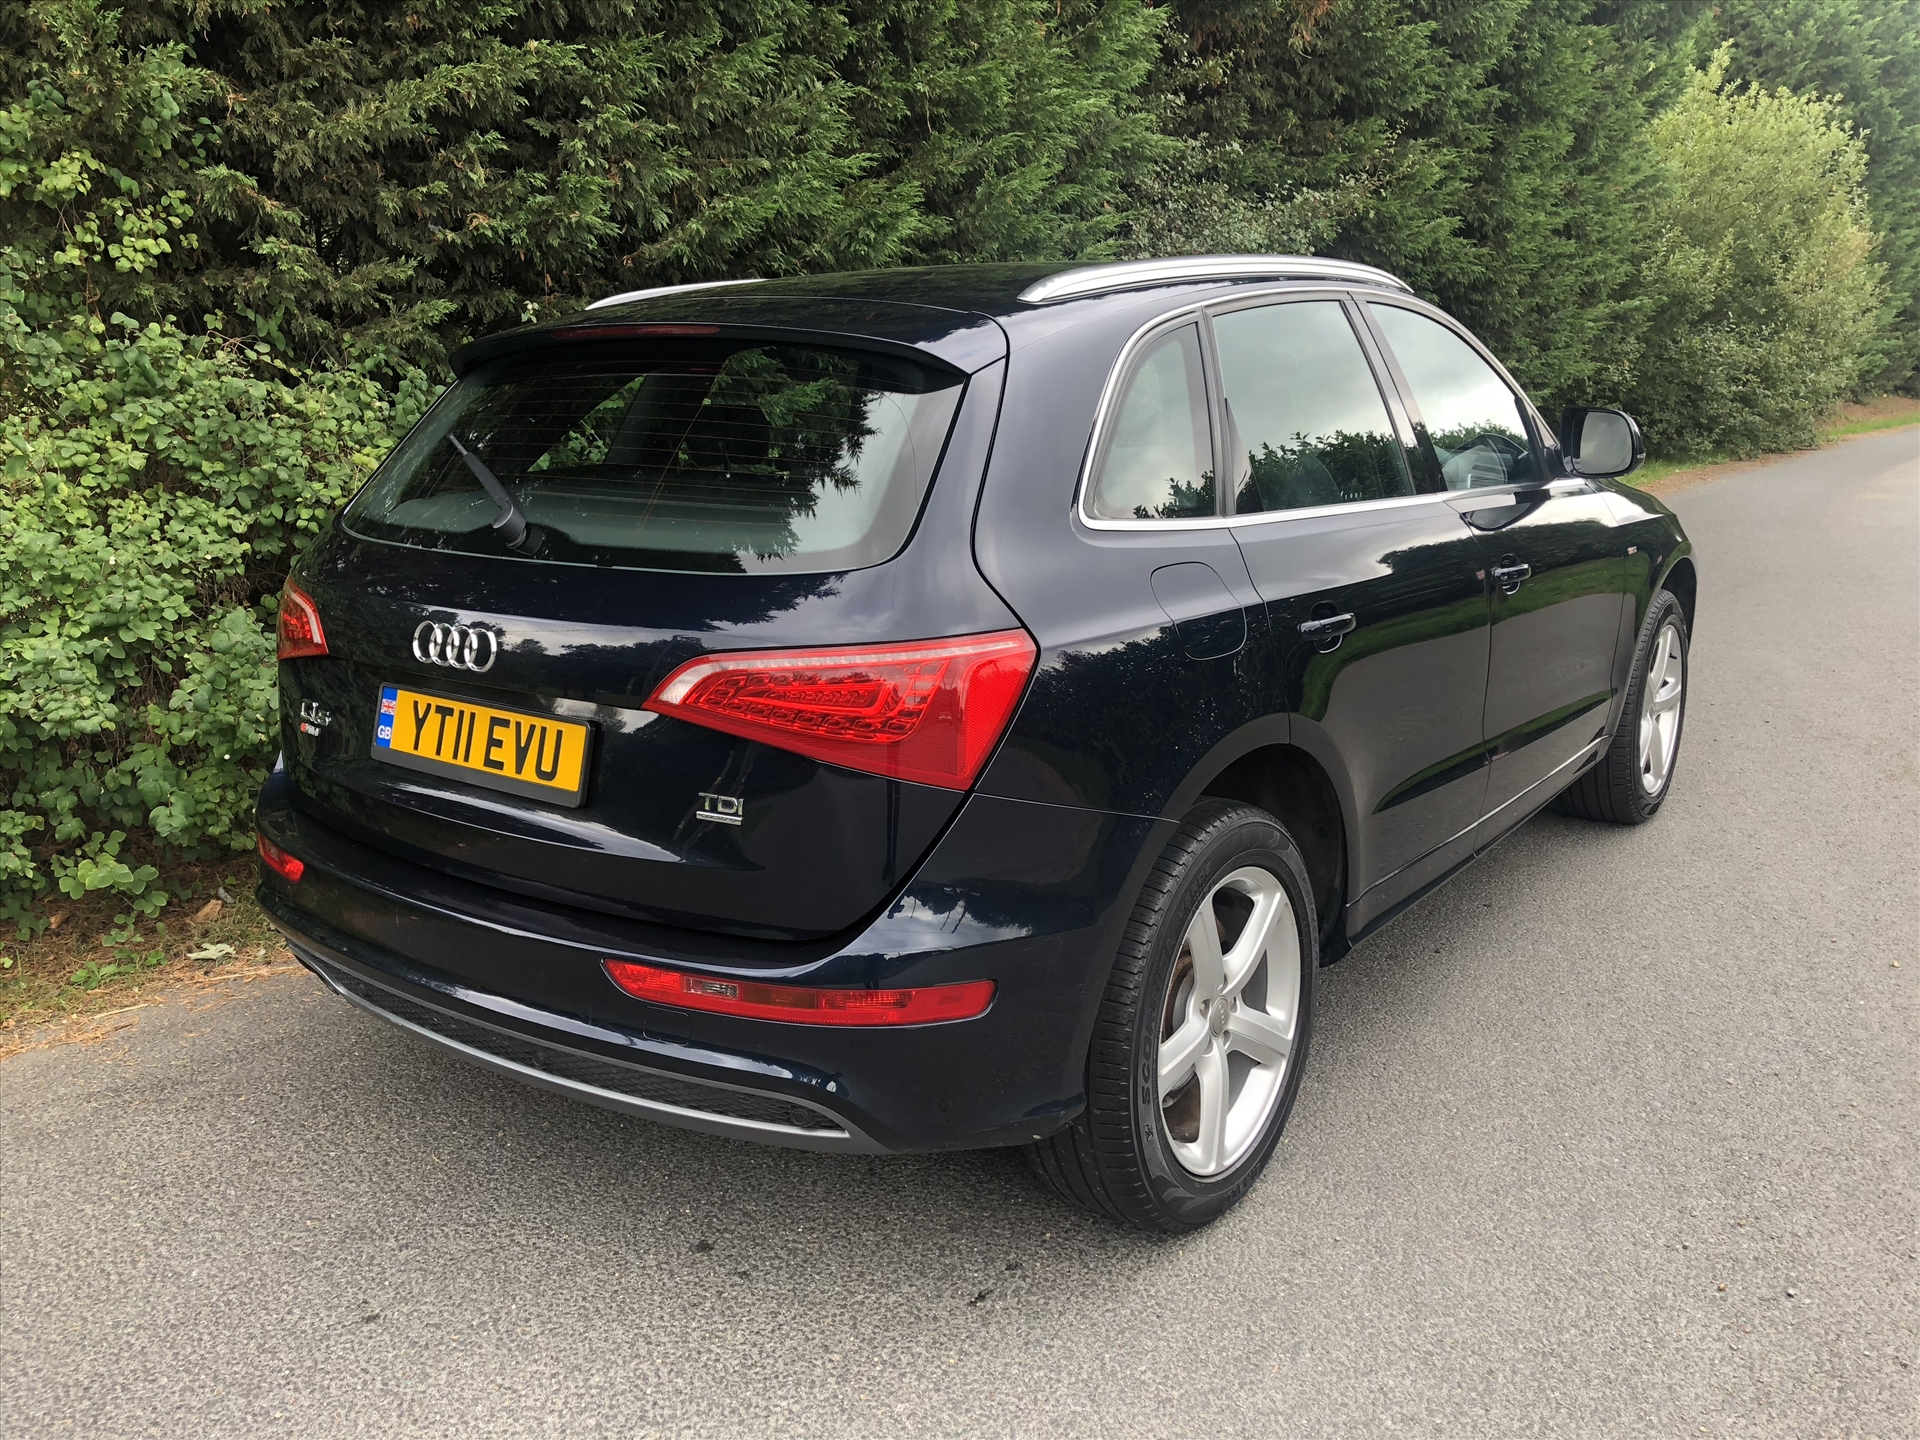 audi q5 2 0 tdi quattro s line 6 speed manual 4x4 turbo diesel 0 only gbp 10 499 essex 4x4. Black Bedroom Furniture Sets. Home Design Ideas